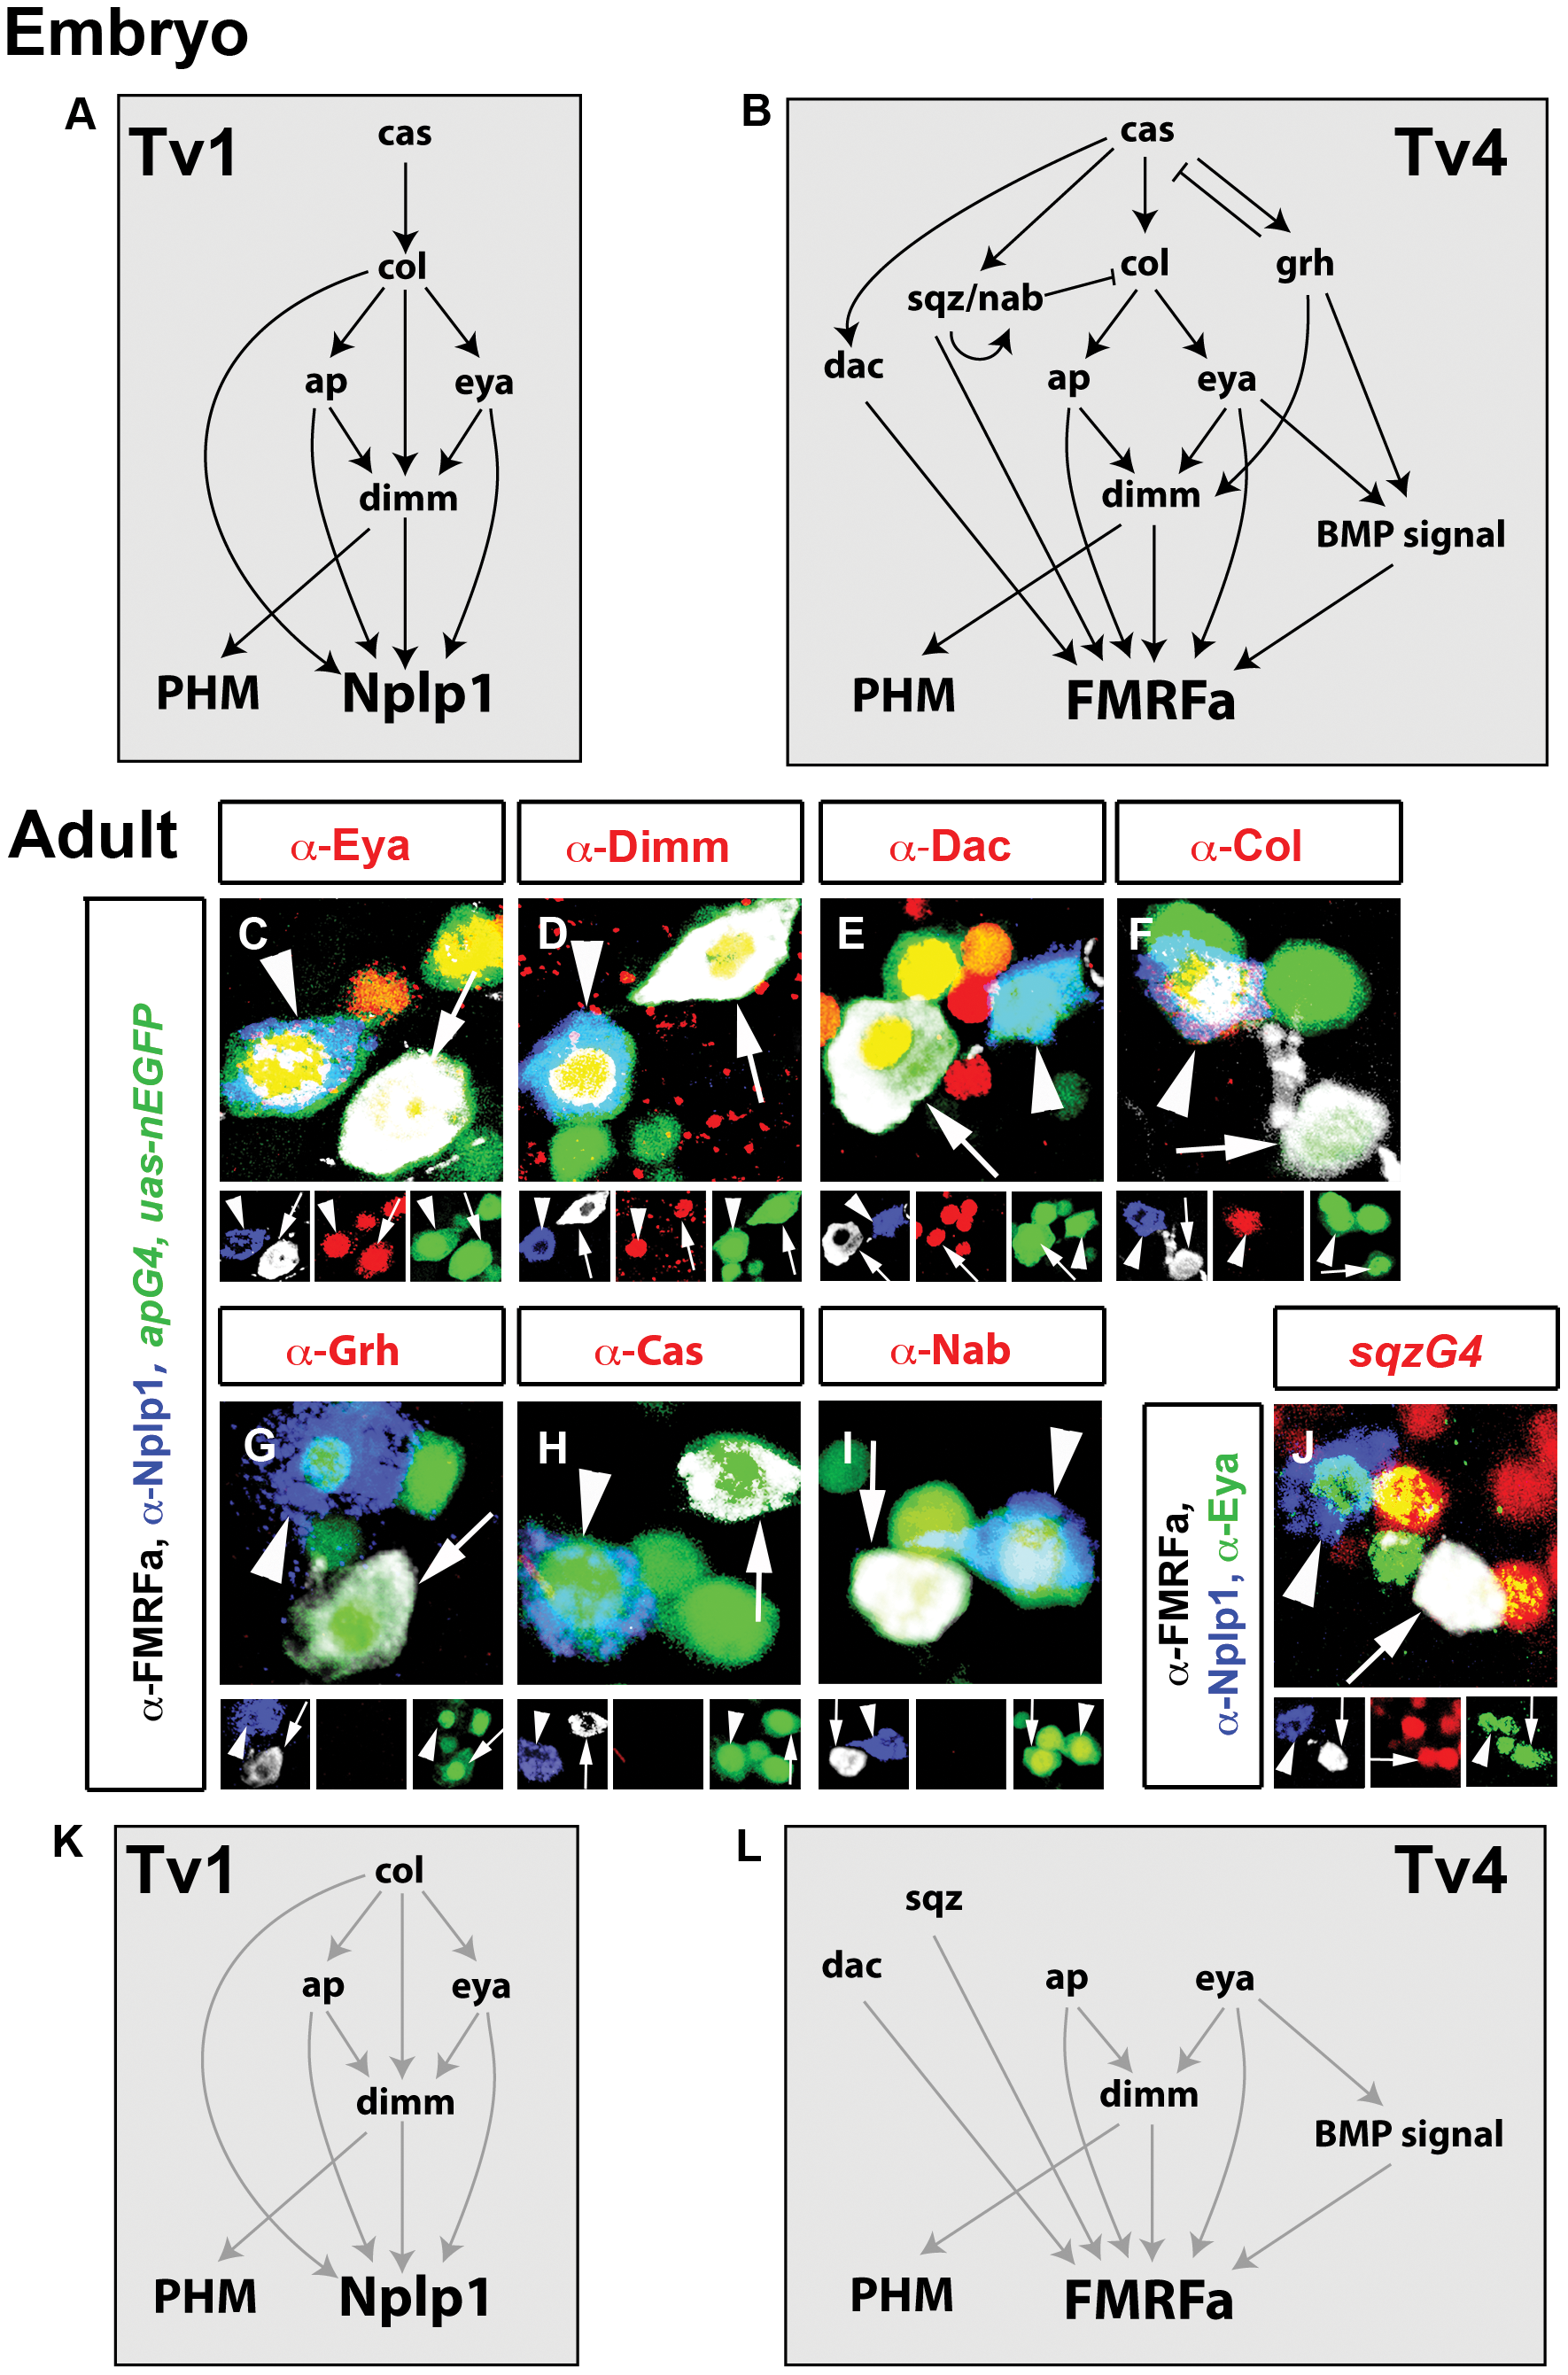 Adult Tv1 and Tv4 neurons maintain Nplp1 and FMRFa and a subset of embryonic transcription factors.